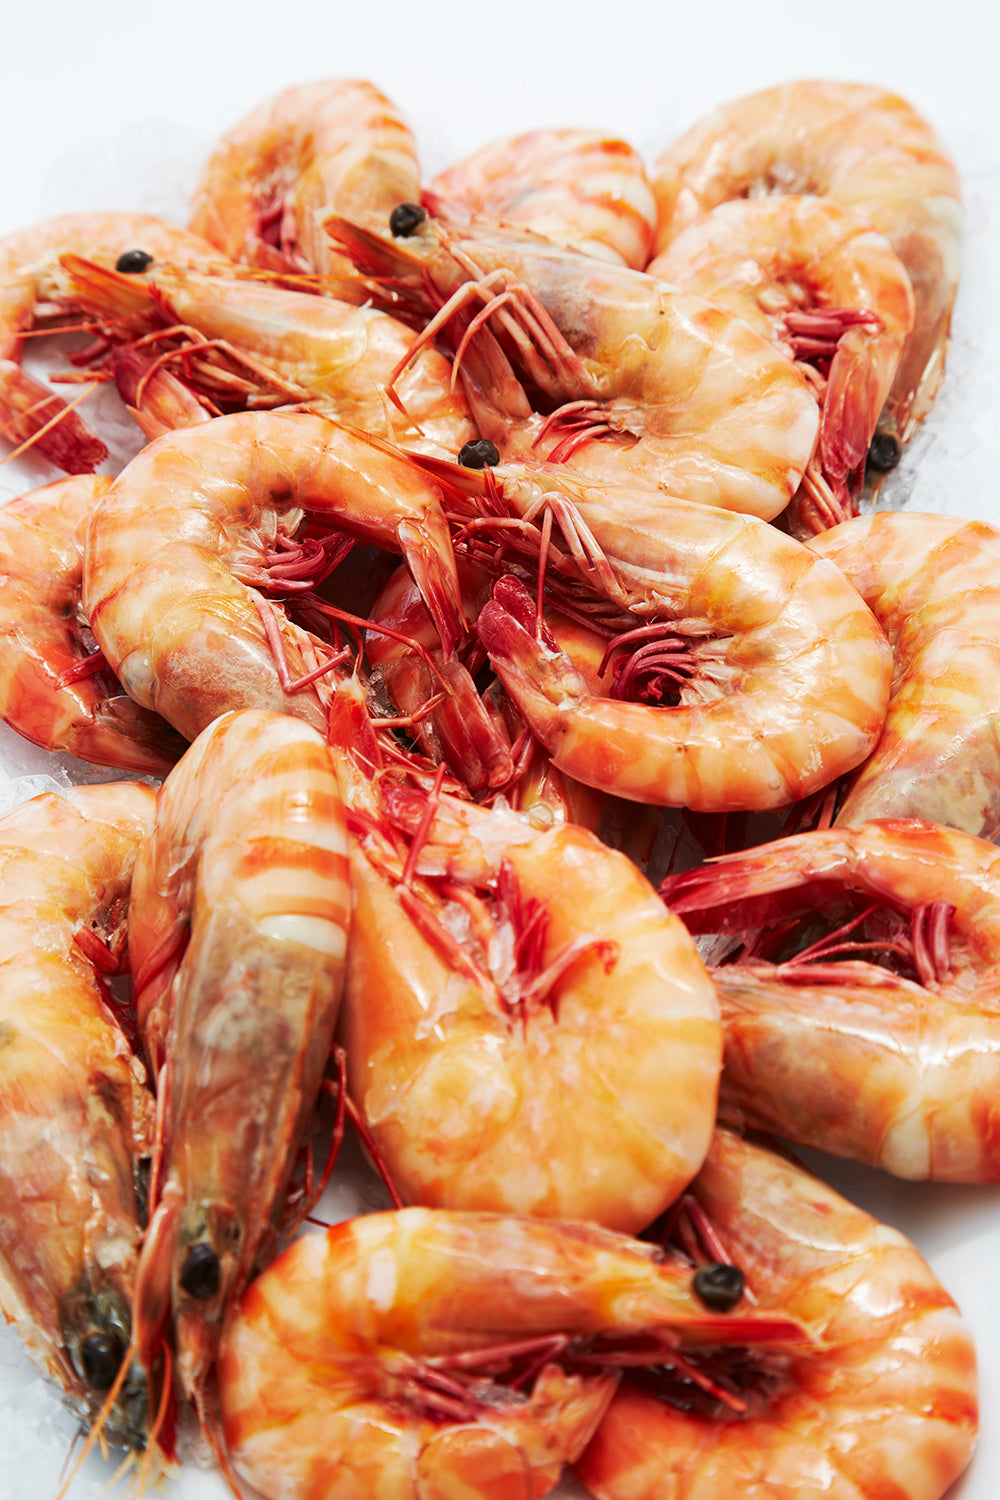 Tiger Prawns Whole Cooked XL Australian